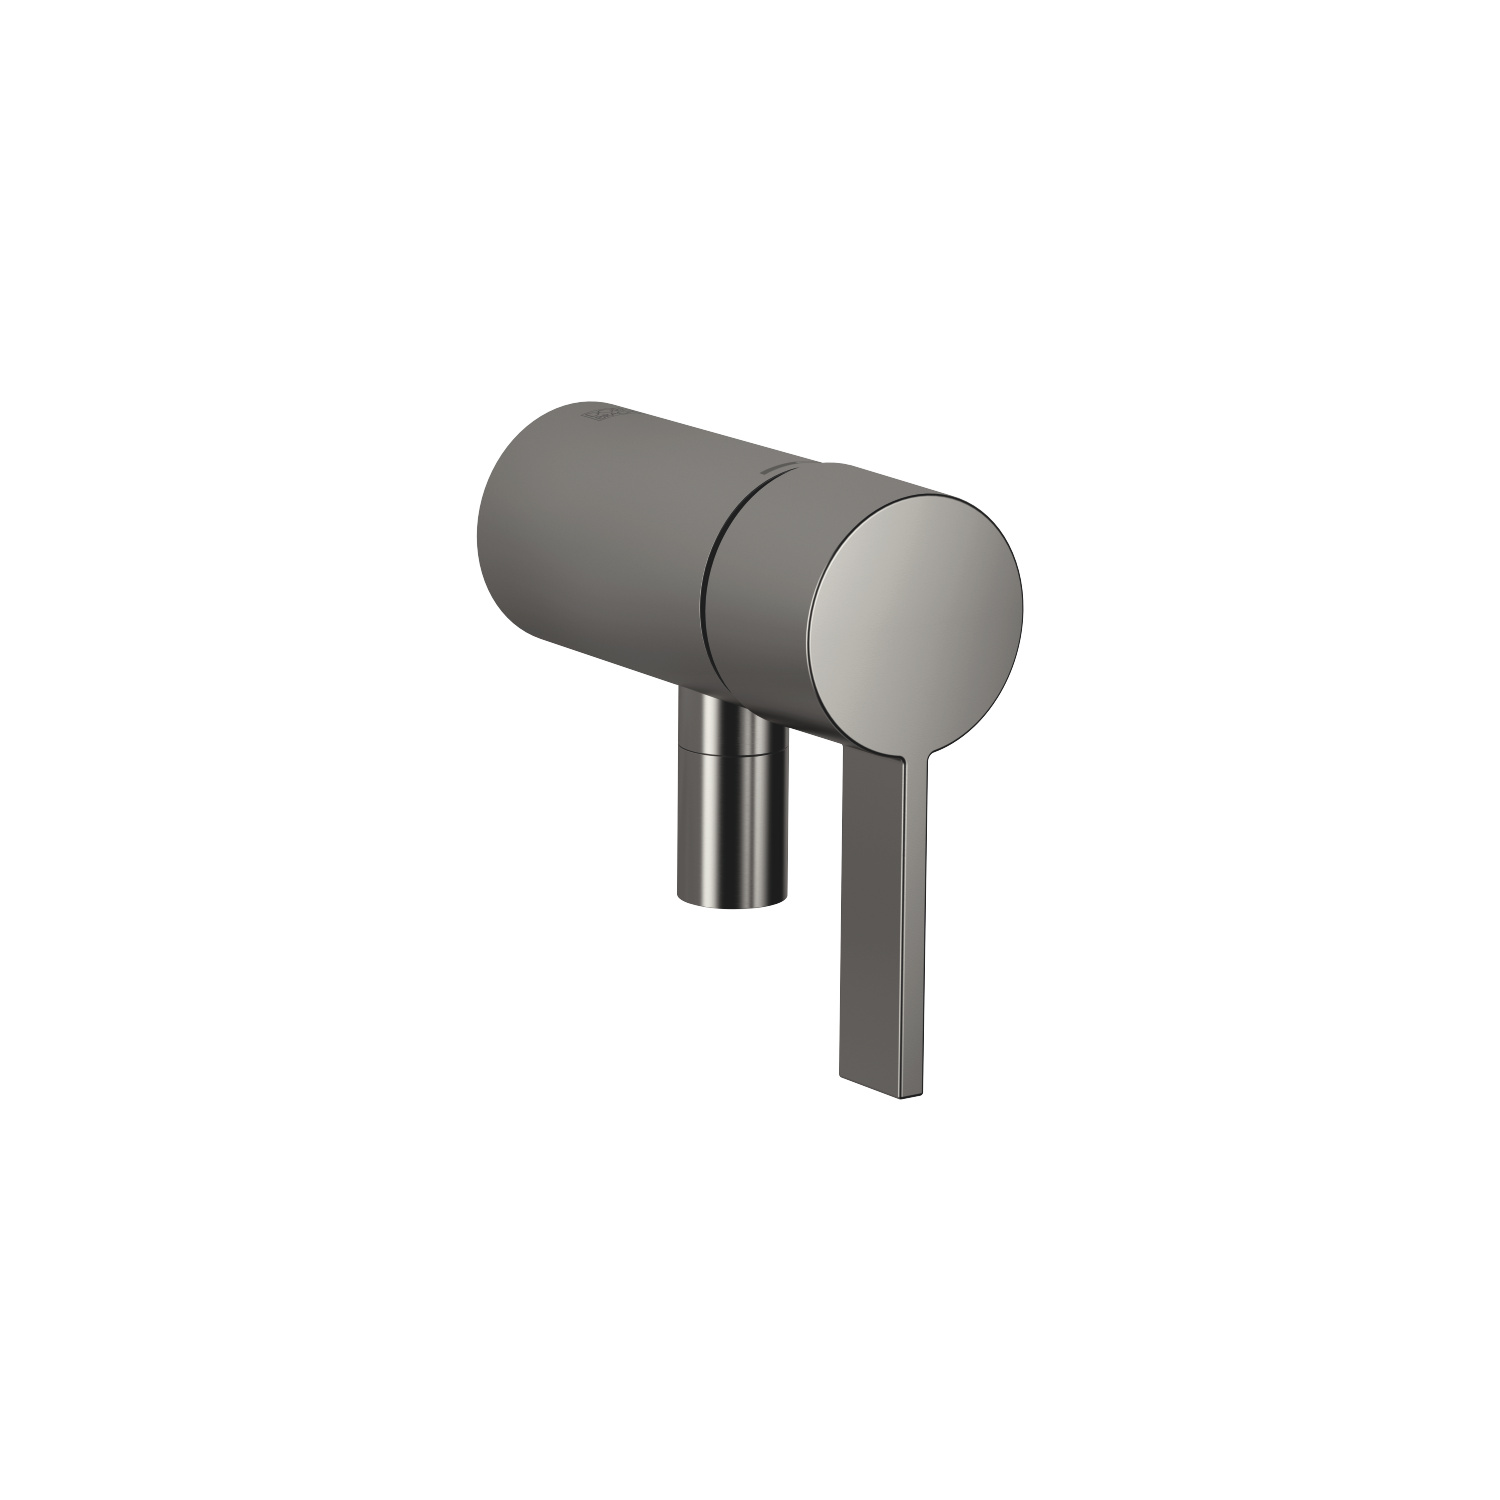 Concealed single-lever mixer with integrated shower connection - Dark Platinum matt